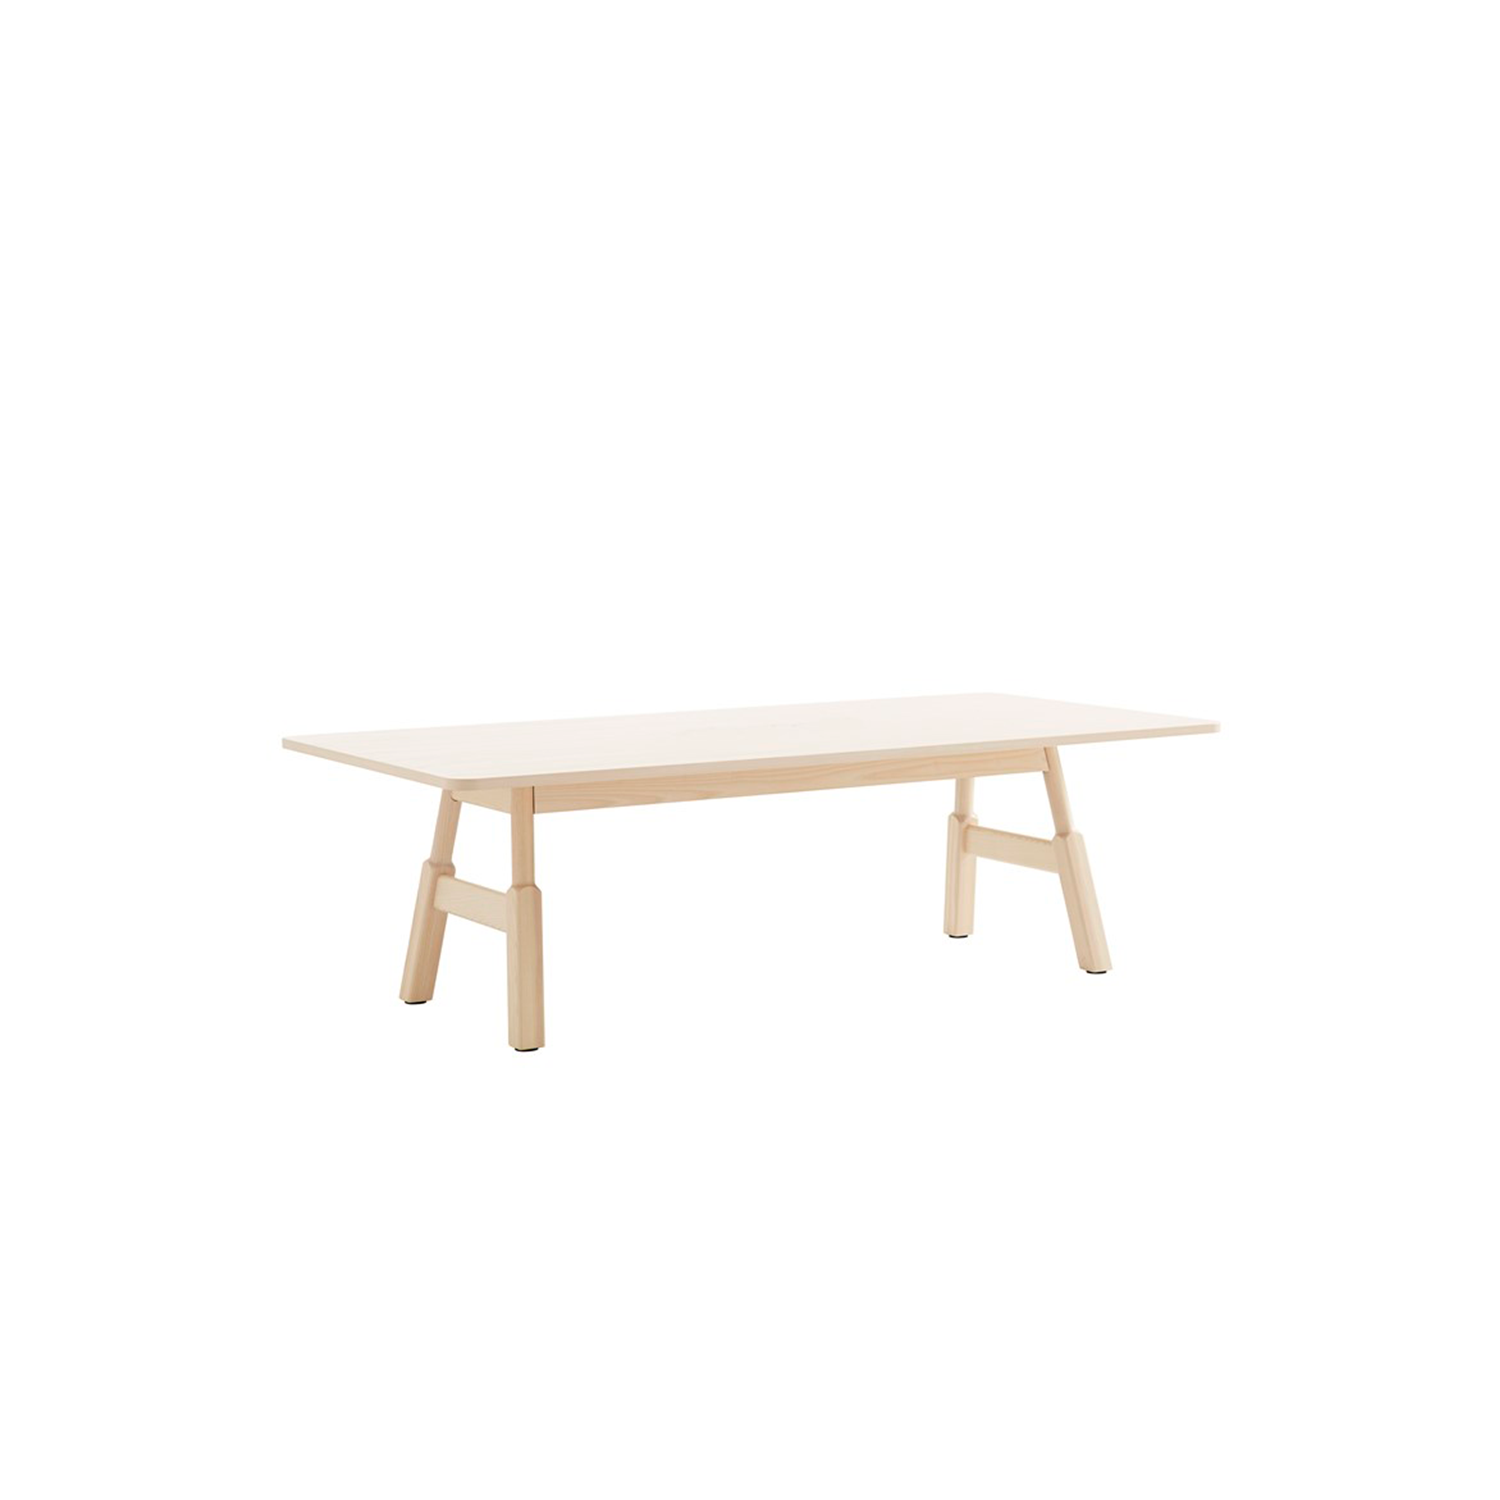 Woodwork Table - Woodwork (2020) is both a desk and a meeting table, a large shared surface for work and socialising of the kind that has become known as a 'community table. It's the perfect setting for bringing your team together for a working breakfast before you all continue to work side by side as the morning progresses. Then it's time for feedback over lunch, as some stand while others sit at the versatile 900 mm high surface.  In the afternoon maybe it's the turn of the company's management group to take over at the table for the remainder of the working day. The design of the legs, with the rounded upper part that morphs into a square shape lower down, is an elegant ergonomic detail that ensures no one need bang their knees when they sit down or are moving around the table. The table exhibits the distinctive character of wood and has been developed for a modern, activity-based office environment – hence the name Woodwork.  Woodwork pedestal table is available in heights of 730, 900 and 1050 mm with rectangular, square and round table tops of veneered MDF. The pedestal is in solid wood with a steel core. The table footplate is in metal, powder lacquered in white (RAL 9016), black (RAL 9005) or grey (RAL 9006/07) and has felt floor protectors. Table top, pedestal and footplate are detachable, so it is simple to freshen them up after many years' faithful service. Various power outlets are available (only for rectangulare pedestal tables) as optional extras.  Woodwork table comes with a rectangular table tops of blockboard veneered and in a choice of two heights, 730 and 900 mm. The underframe and legs are in solid wood with adjustment screws on the feet. The table is supplied unassembled. Various power outlets are available as optional extras.  All Woodwork tables have a table tops of veneered in oak, ash, standard stains on ash and white glazed oak or ash. Top is also available in laminate (white, black, oak, birch, ash) and black desktop. Clear lacquered surfa